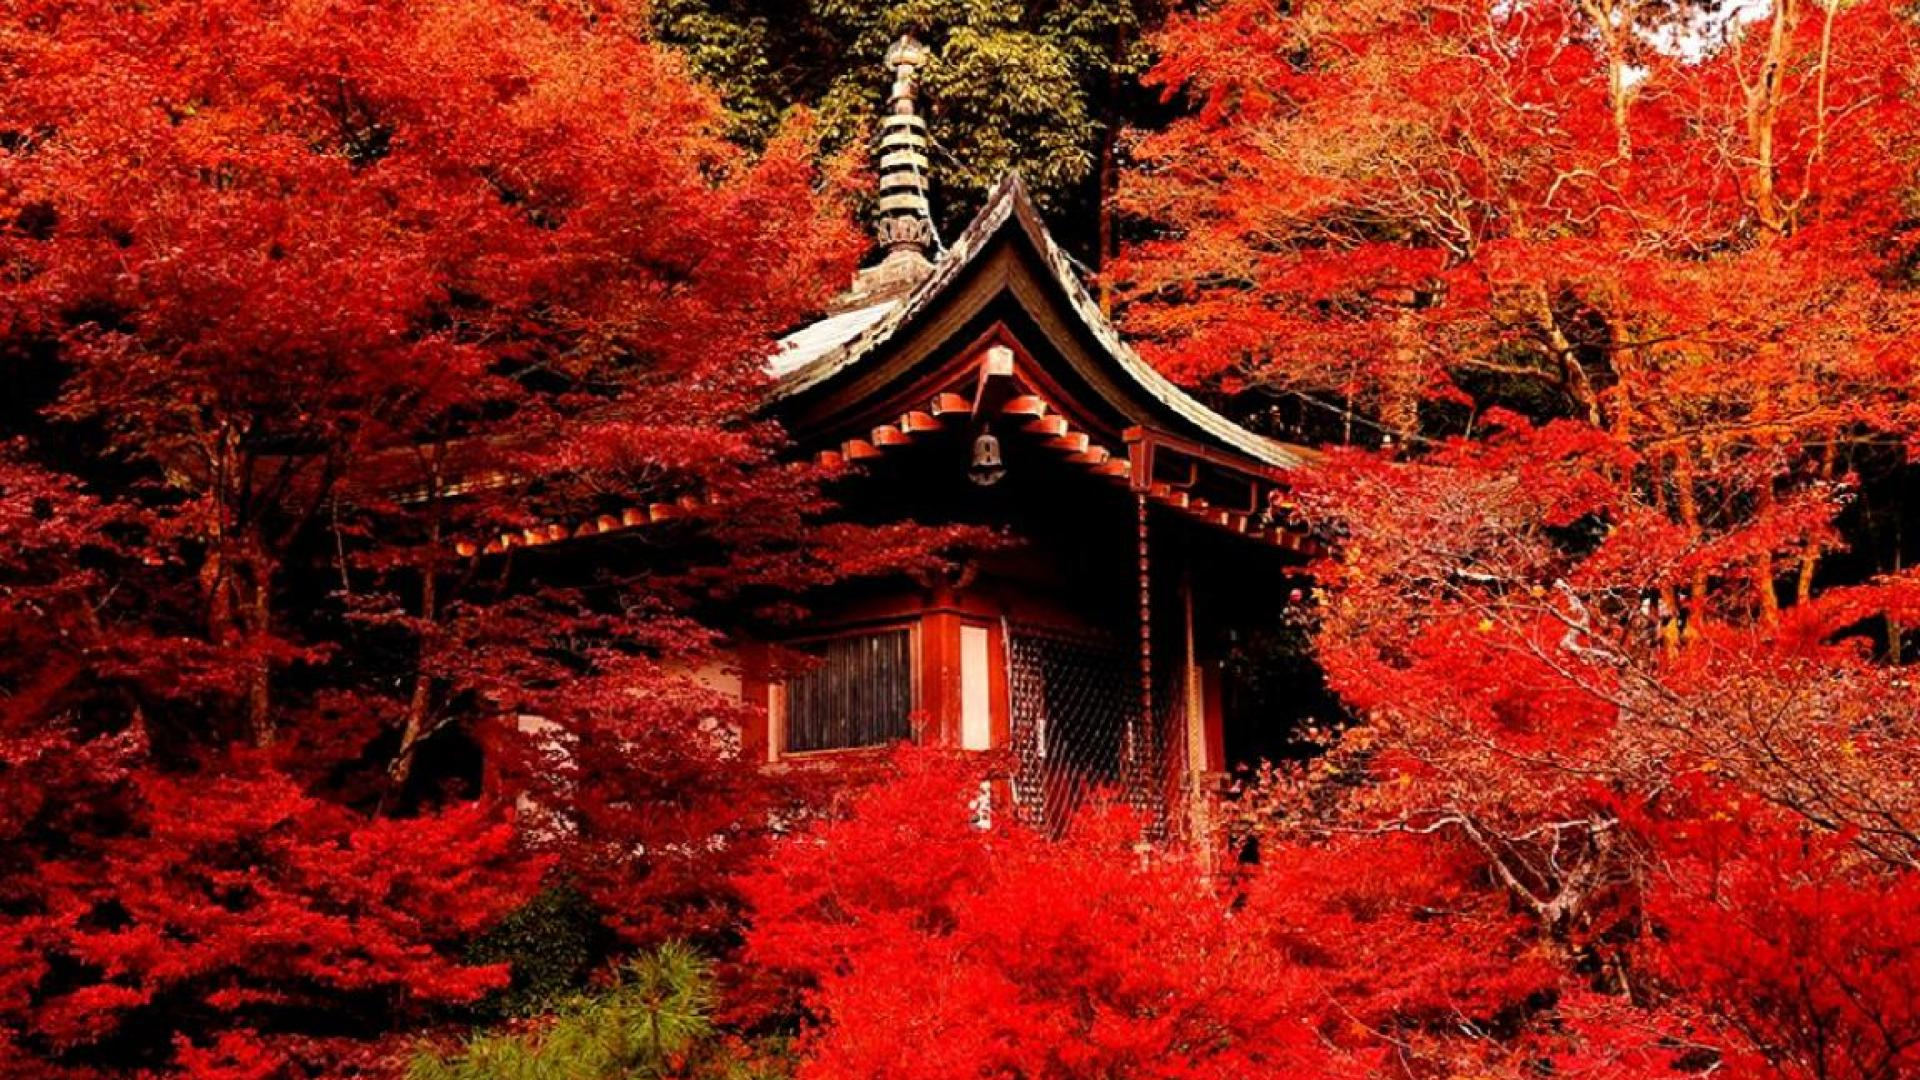 Hd 1080p Fall Wallpaper 79 Images: Kyoto HD Wallpapers